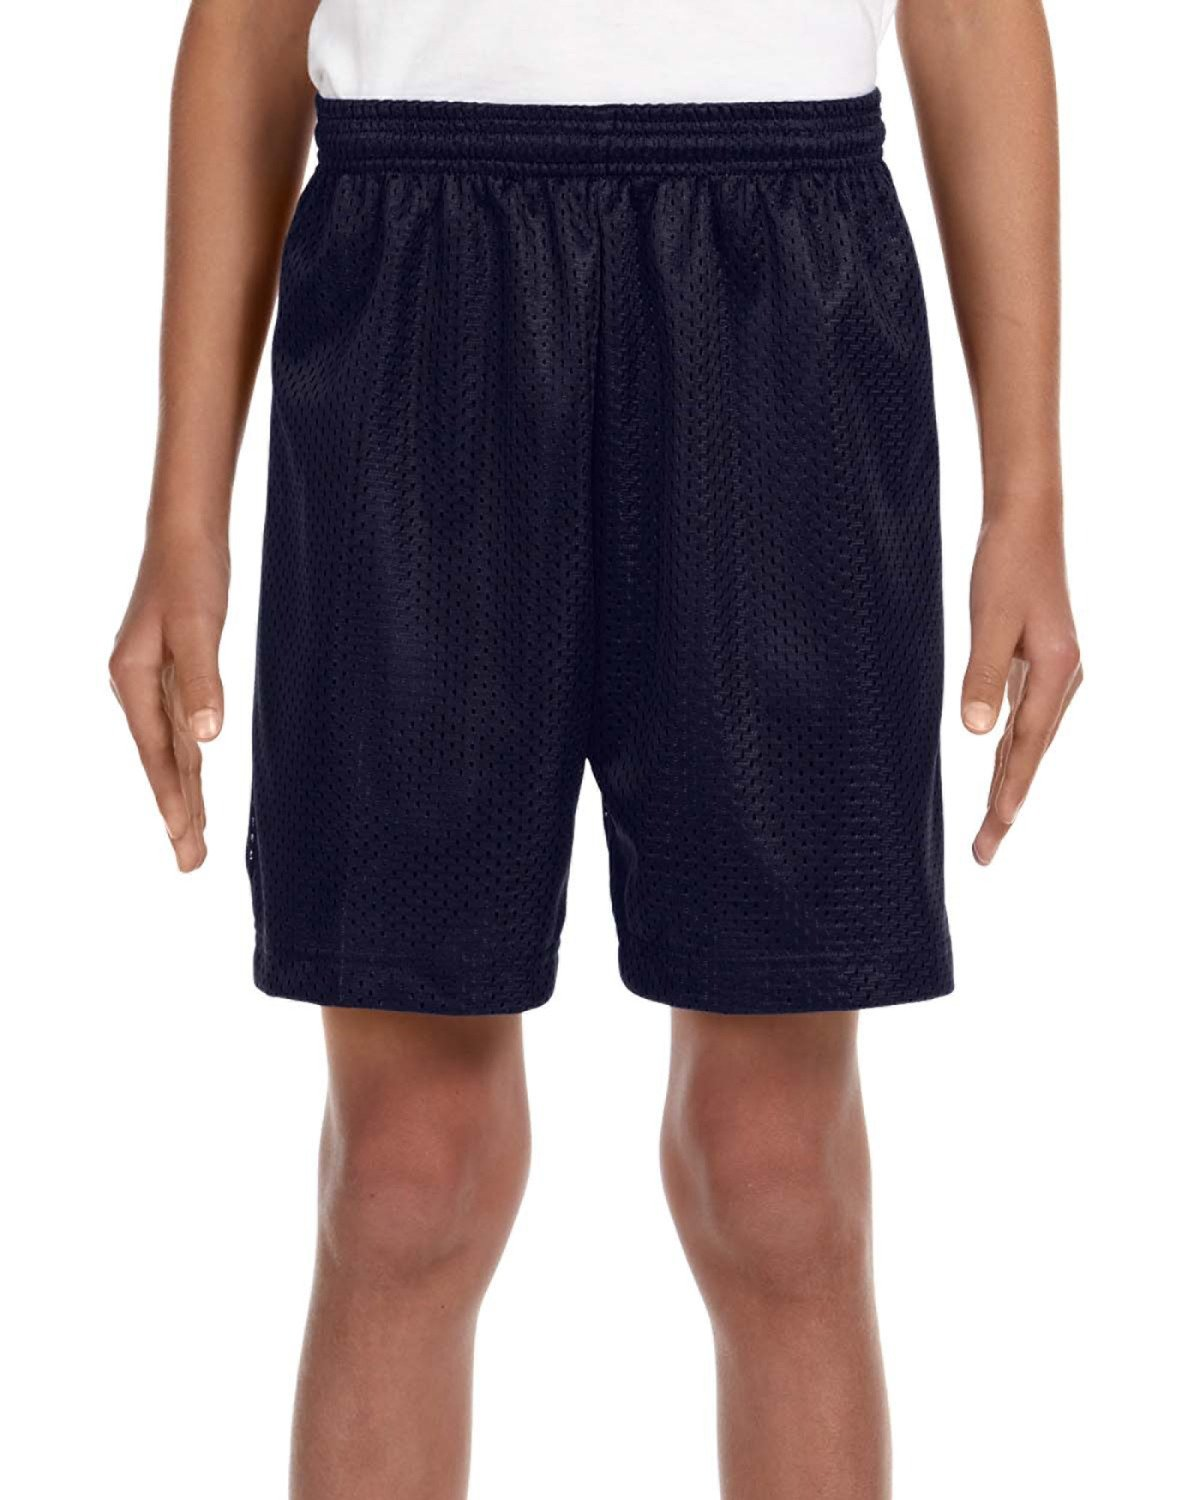 A4 Youth Six Inch Inseam Mesh Short NAVY